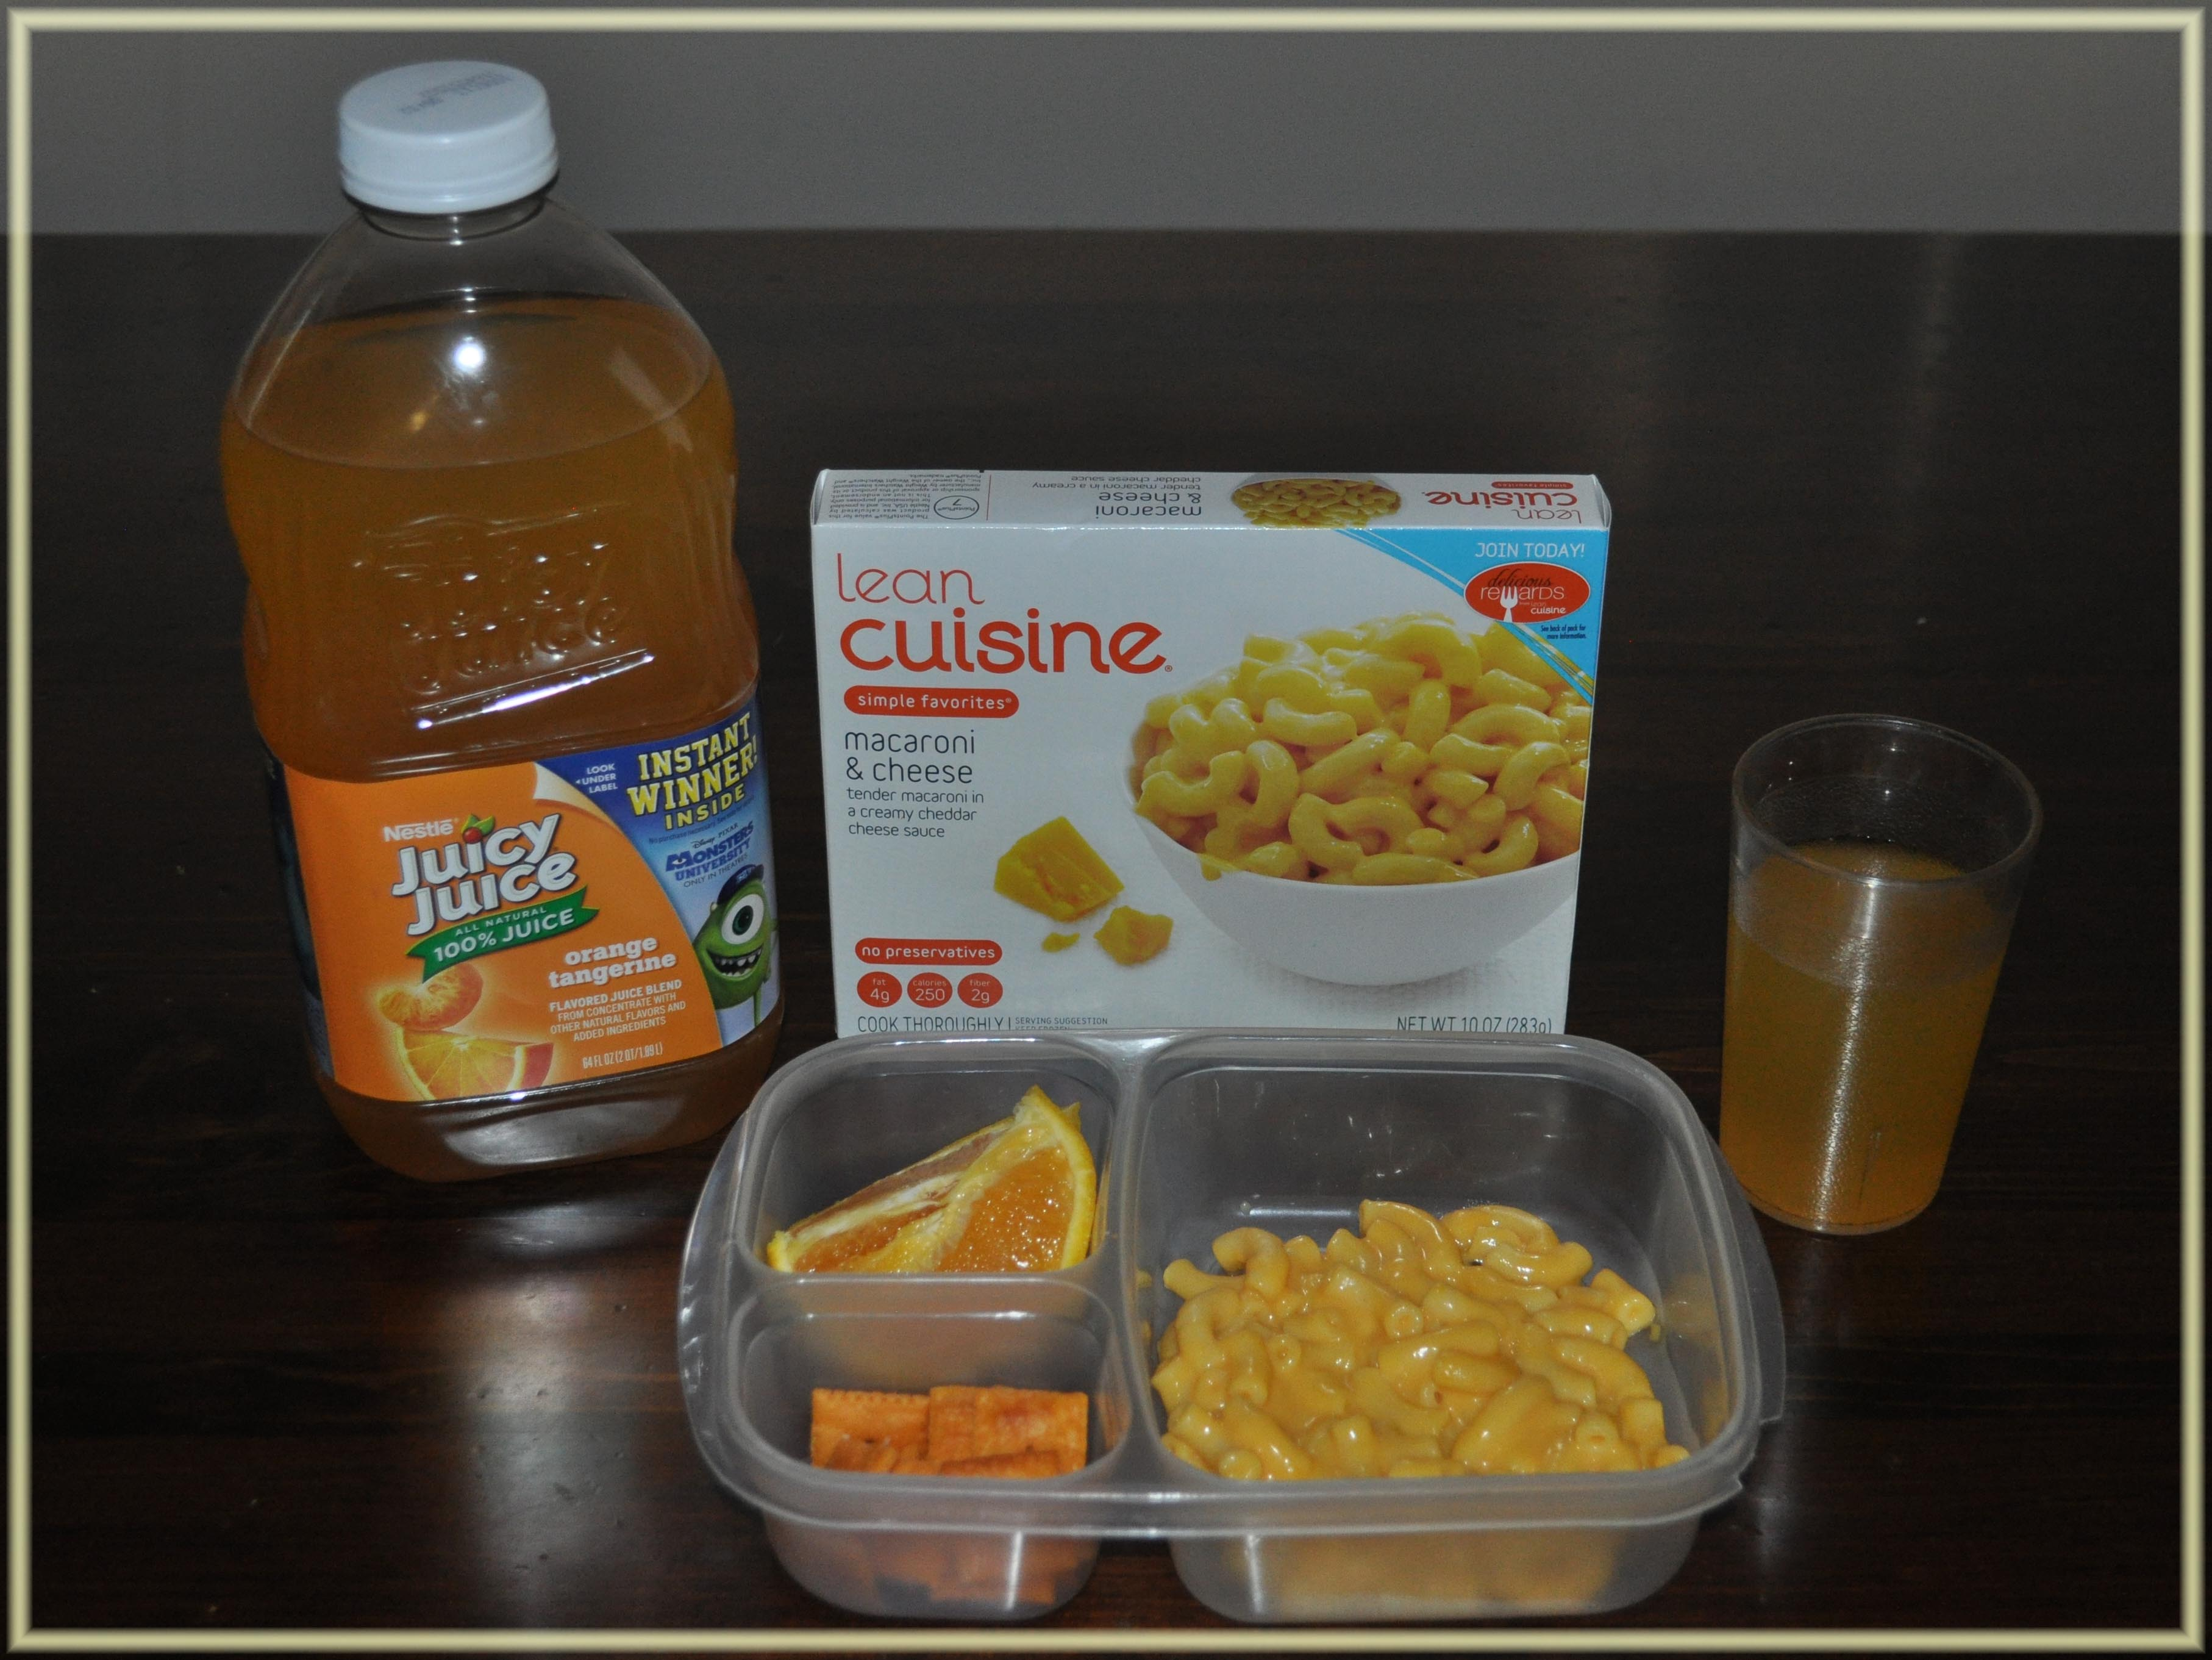 Back to school fun easy meals with nestl btsideas cbias on another day this past week we had a red theme with red foods including lean cuisine french bread pepperoni pizza and juicy juice fruit punch forumfinder Image collections